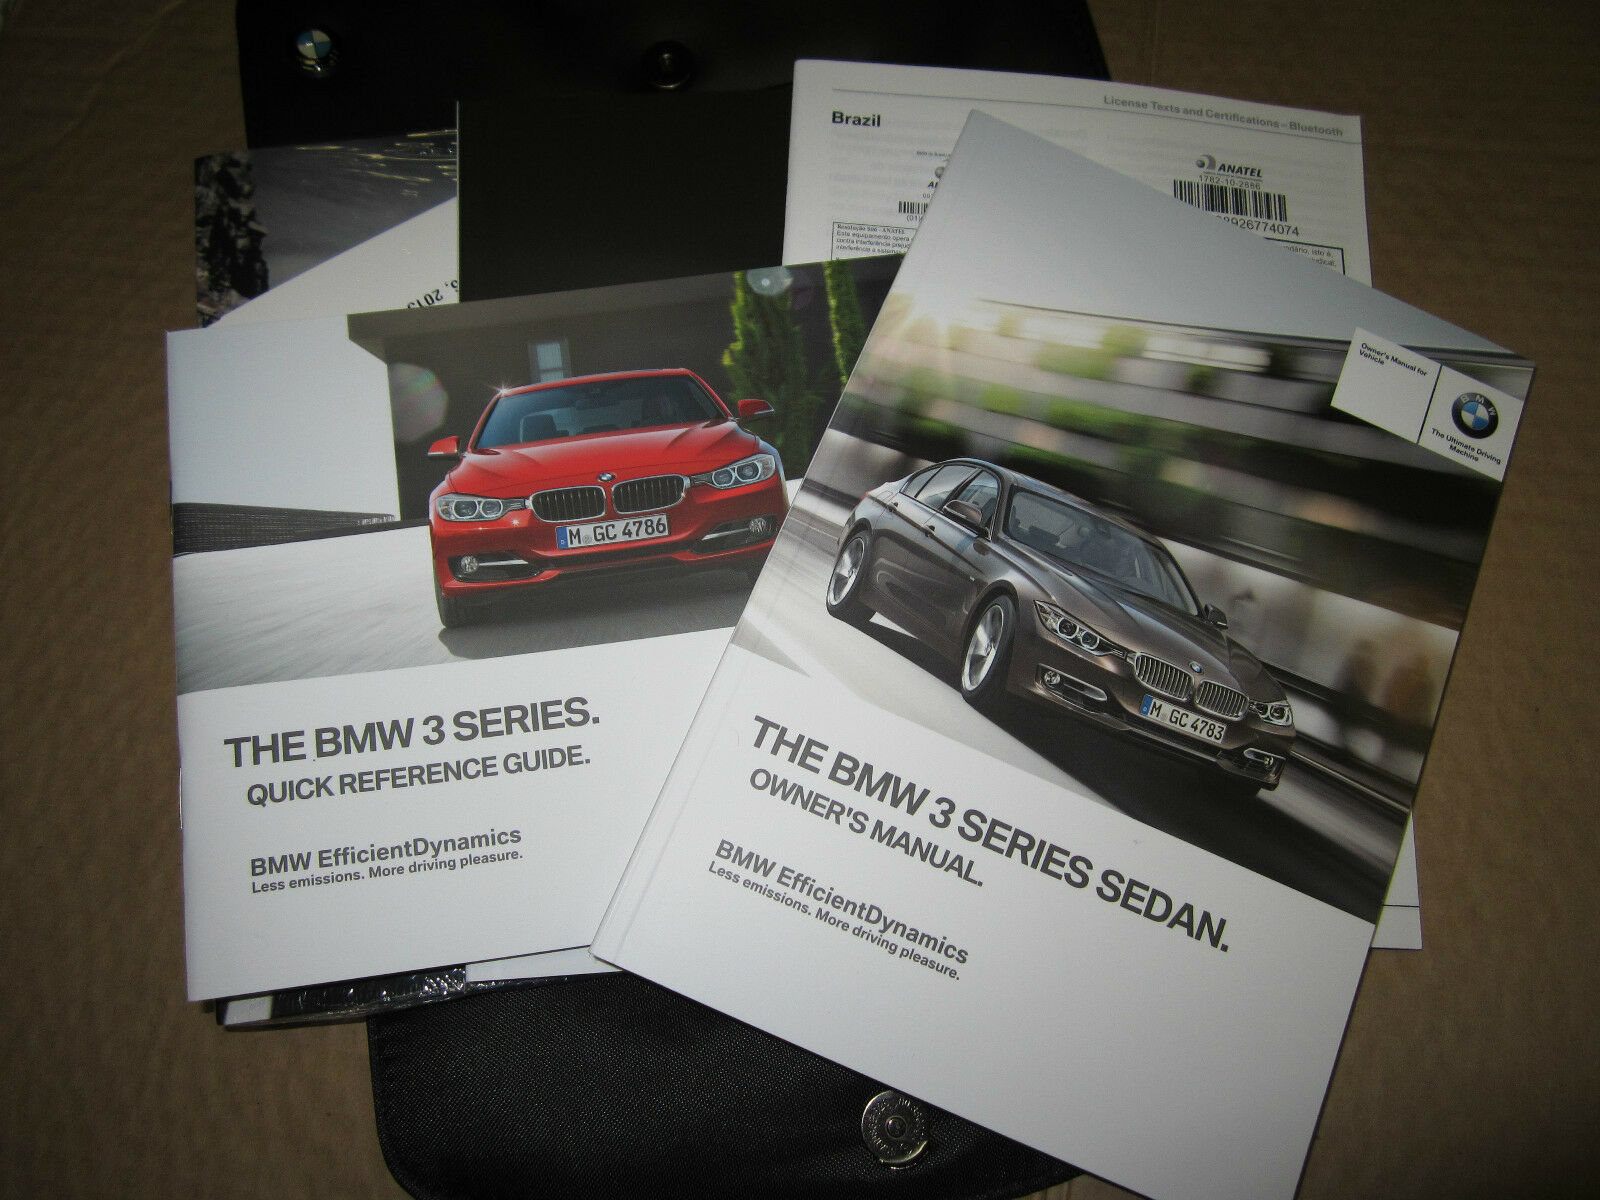 2014 Bmw 3 Series Owners Manual - J0639 1 of 1FREE Shipping ...